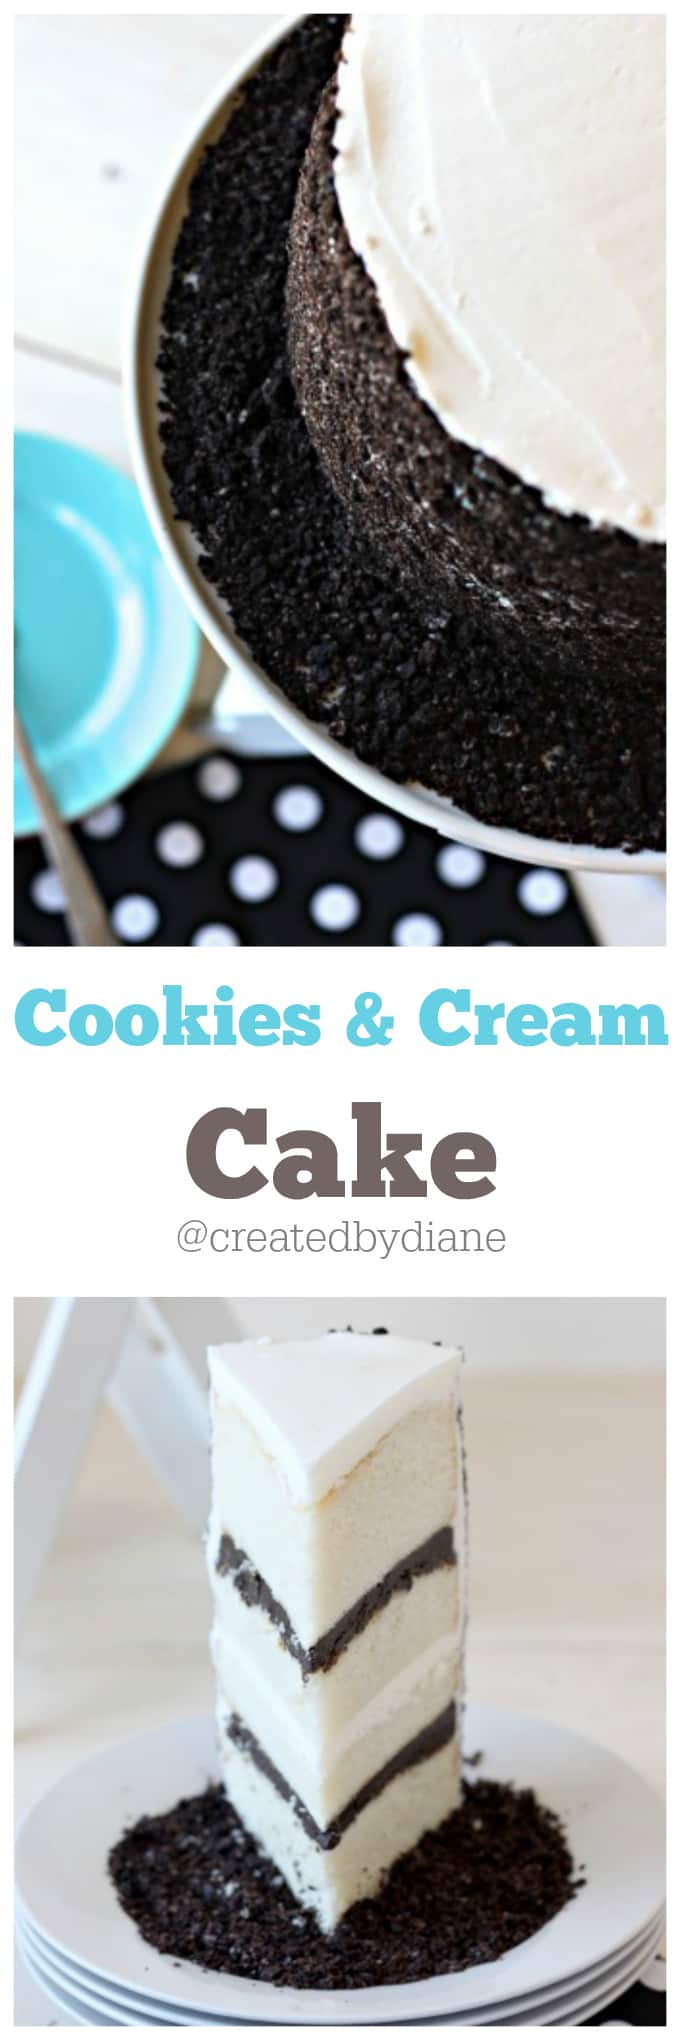 Cookies and Cream Cake @createdbydiane